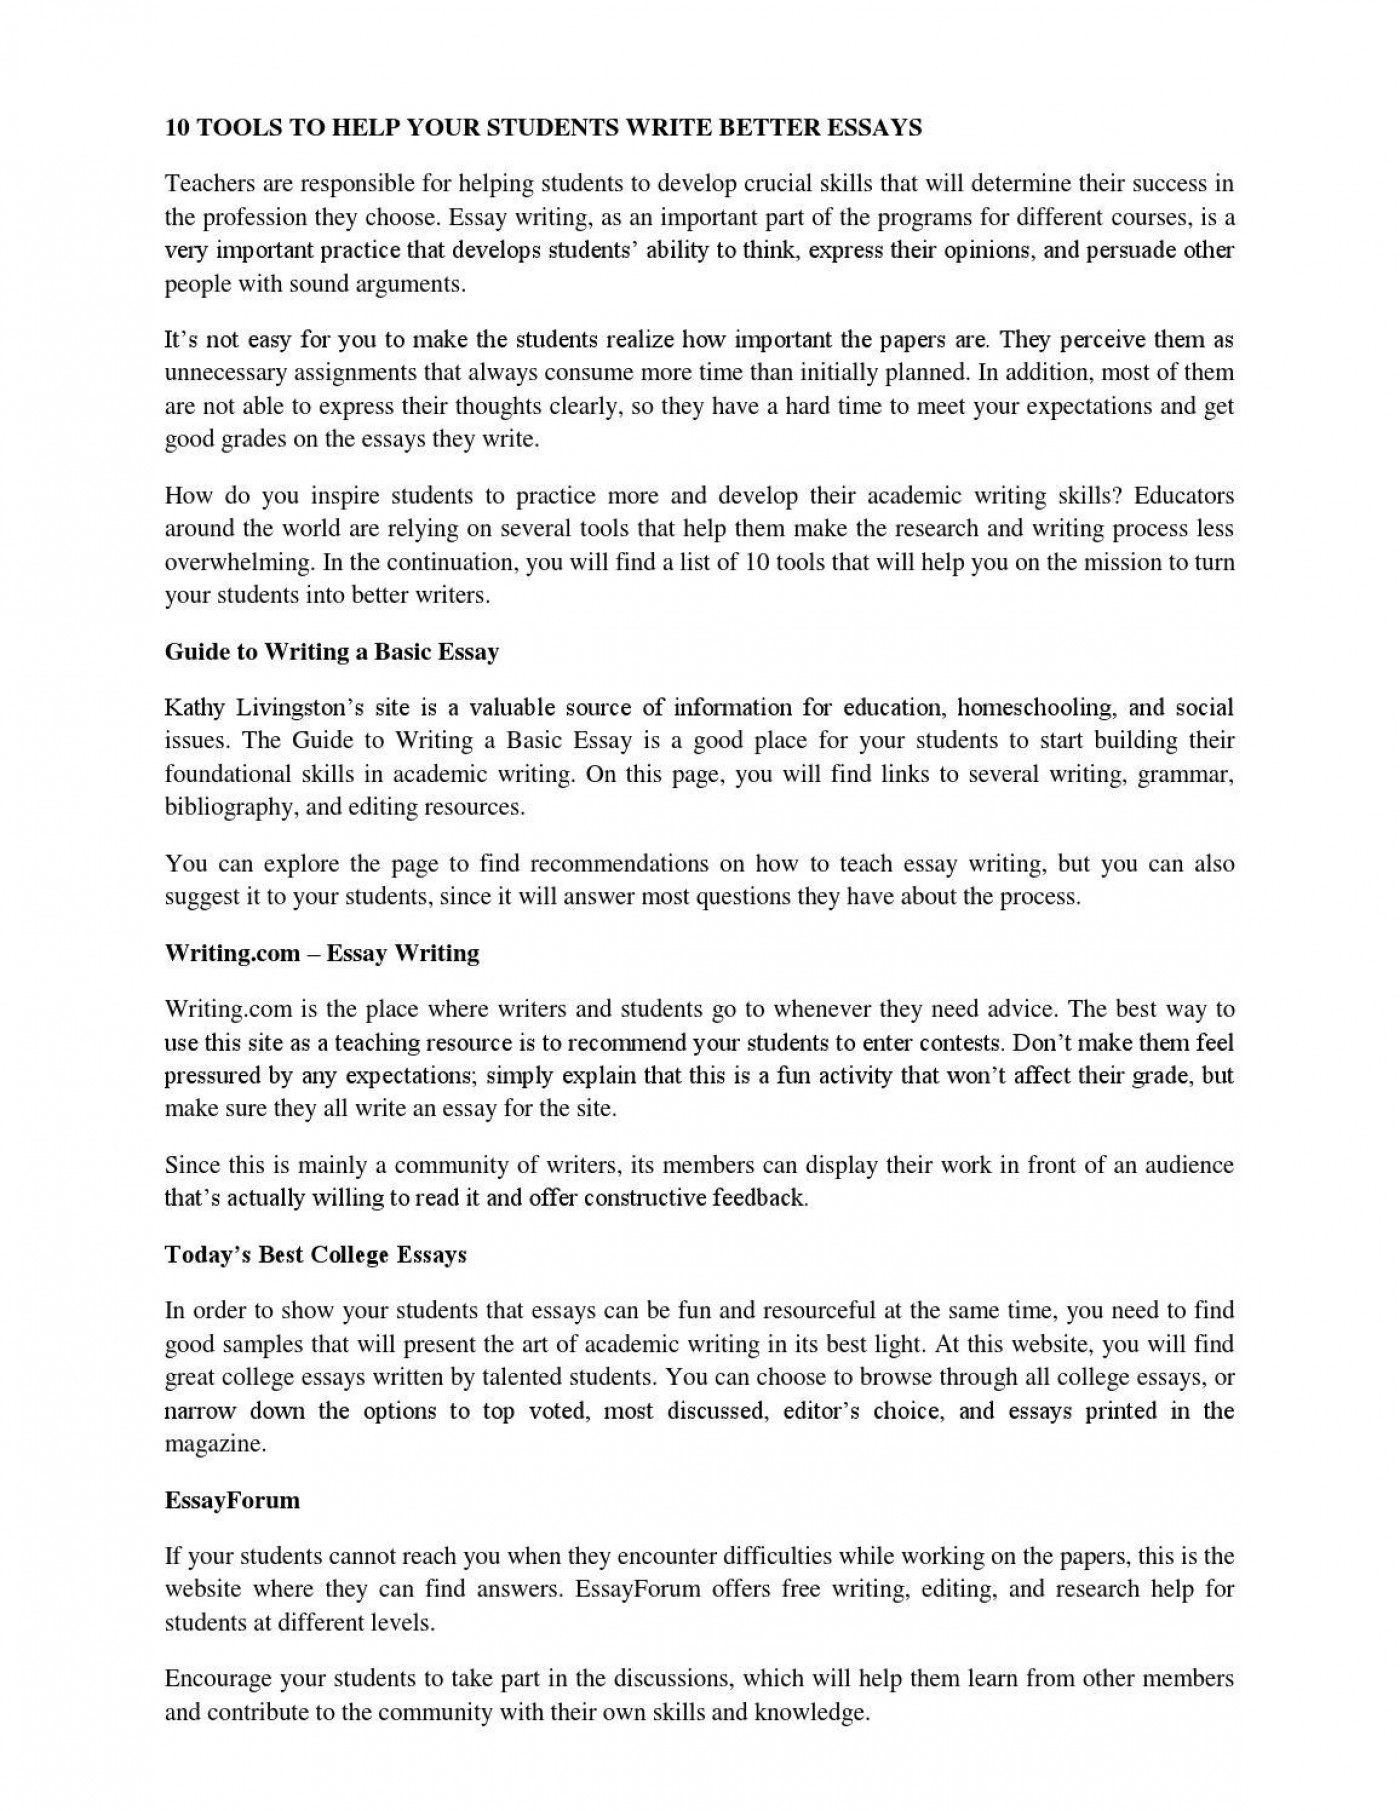 011 Research Paper Essay Writing Websites Reviews For Students Editing Free Page Example Best Software Download Services In India 1400